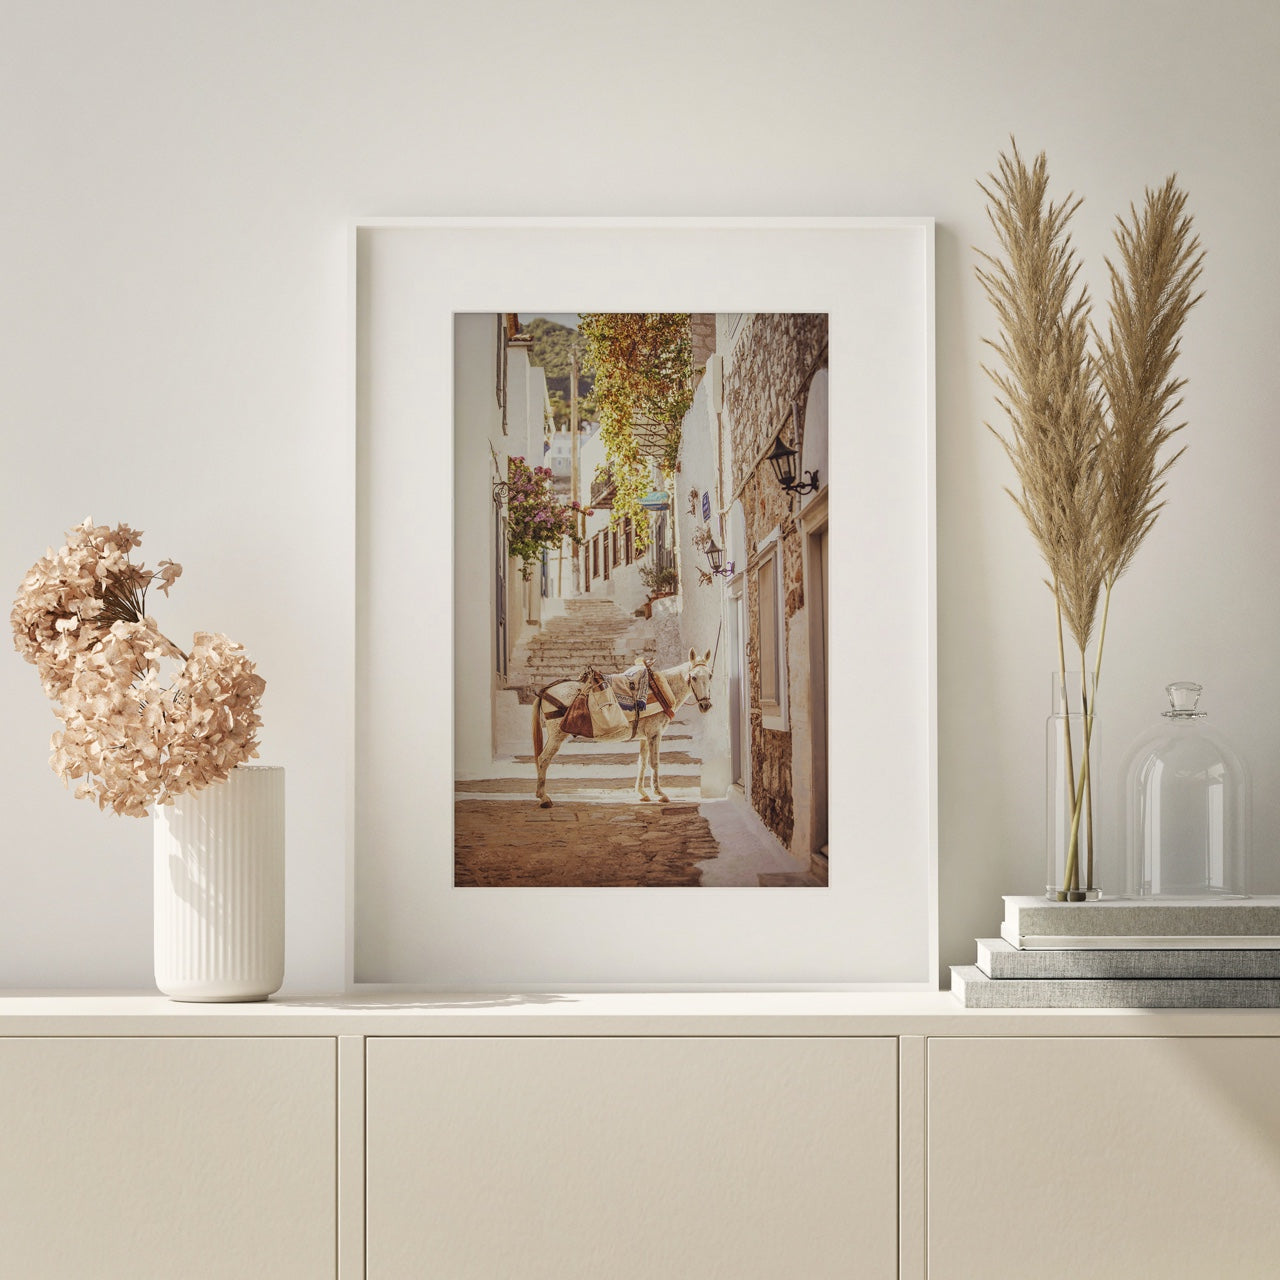 framed photo wall art Greece